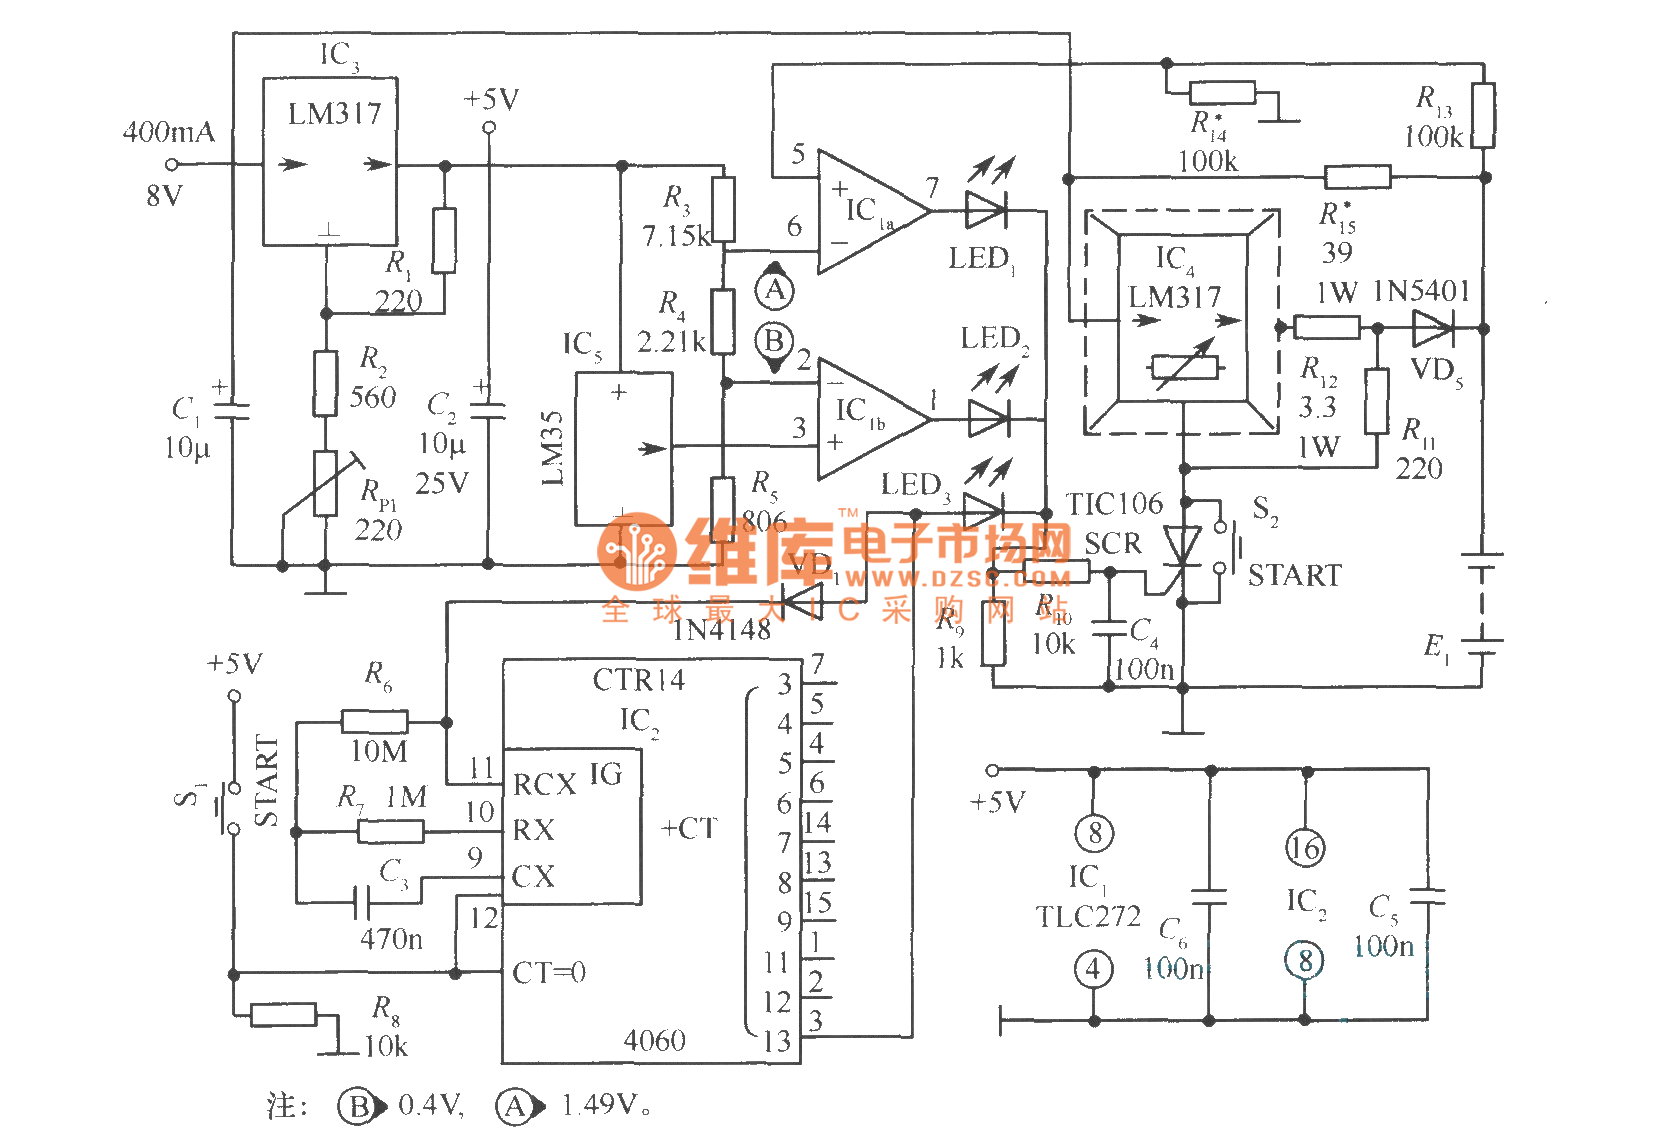 Fast Ni Mh Battery Charger Circuit Diagram Seekiccom Circuitdiagram Basiccircuit Mostoacloadinterfacehtml